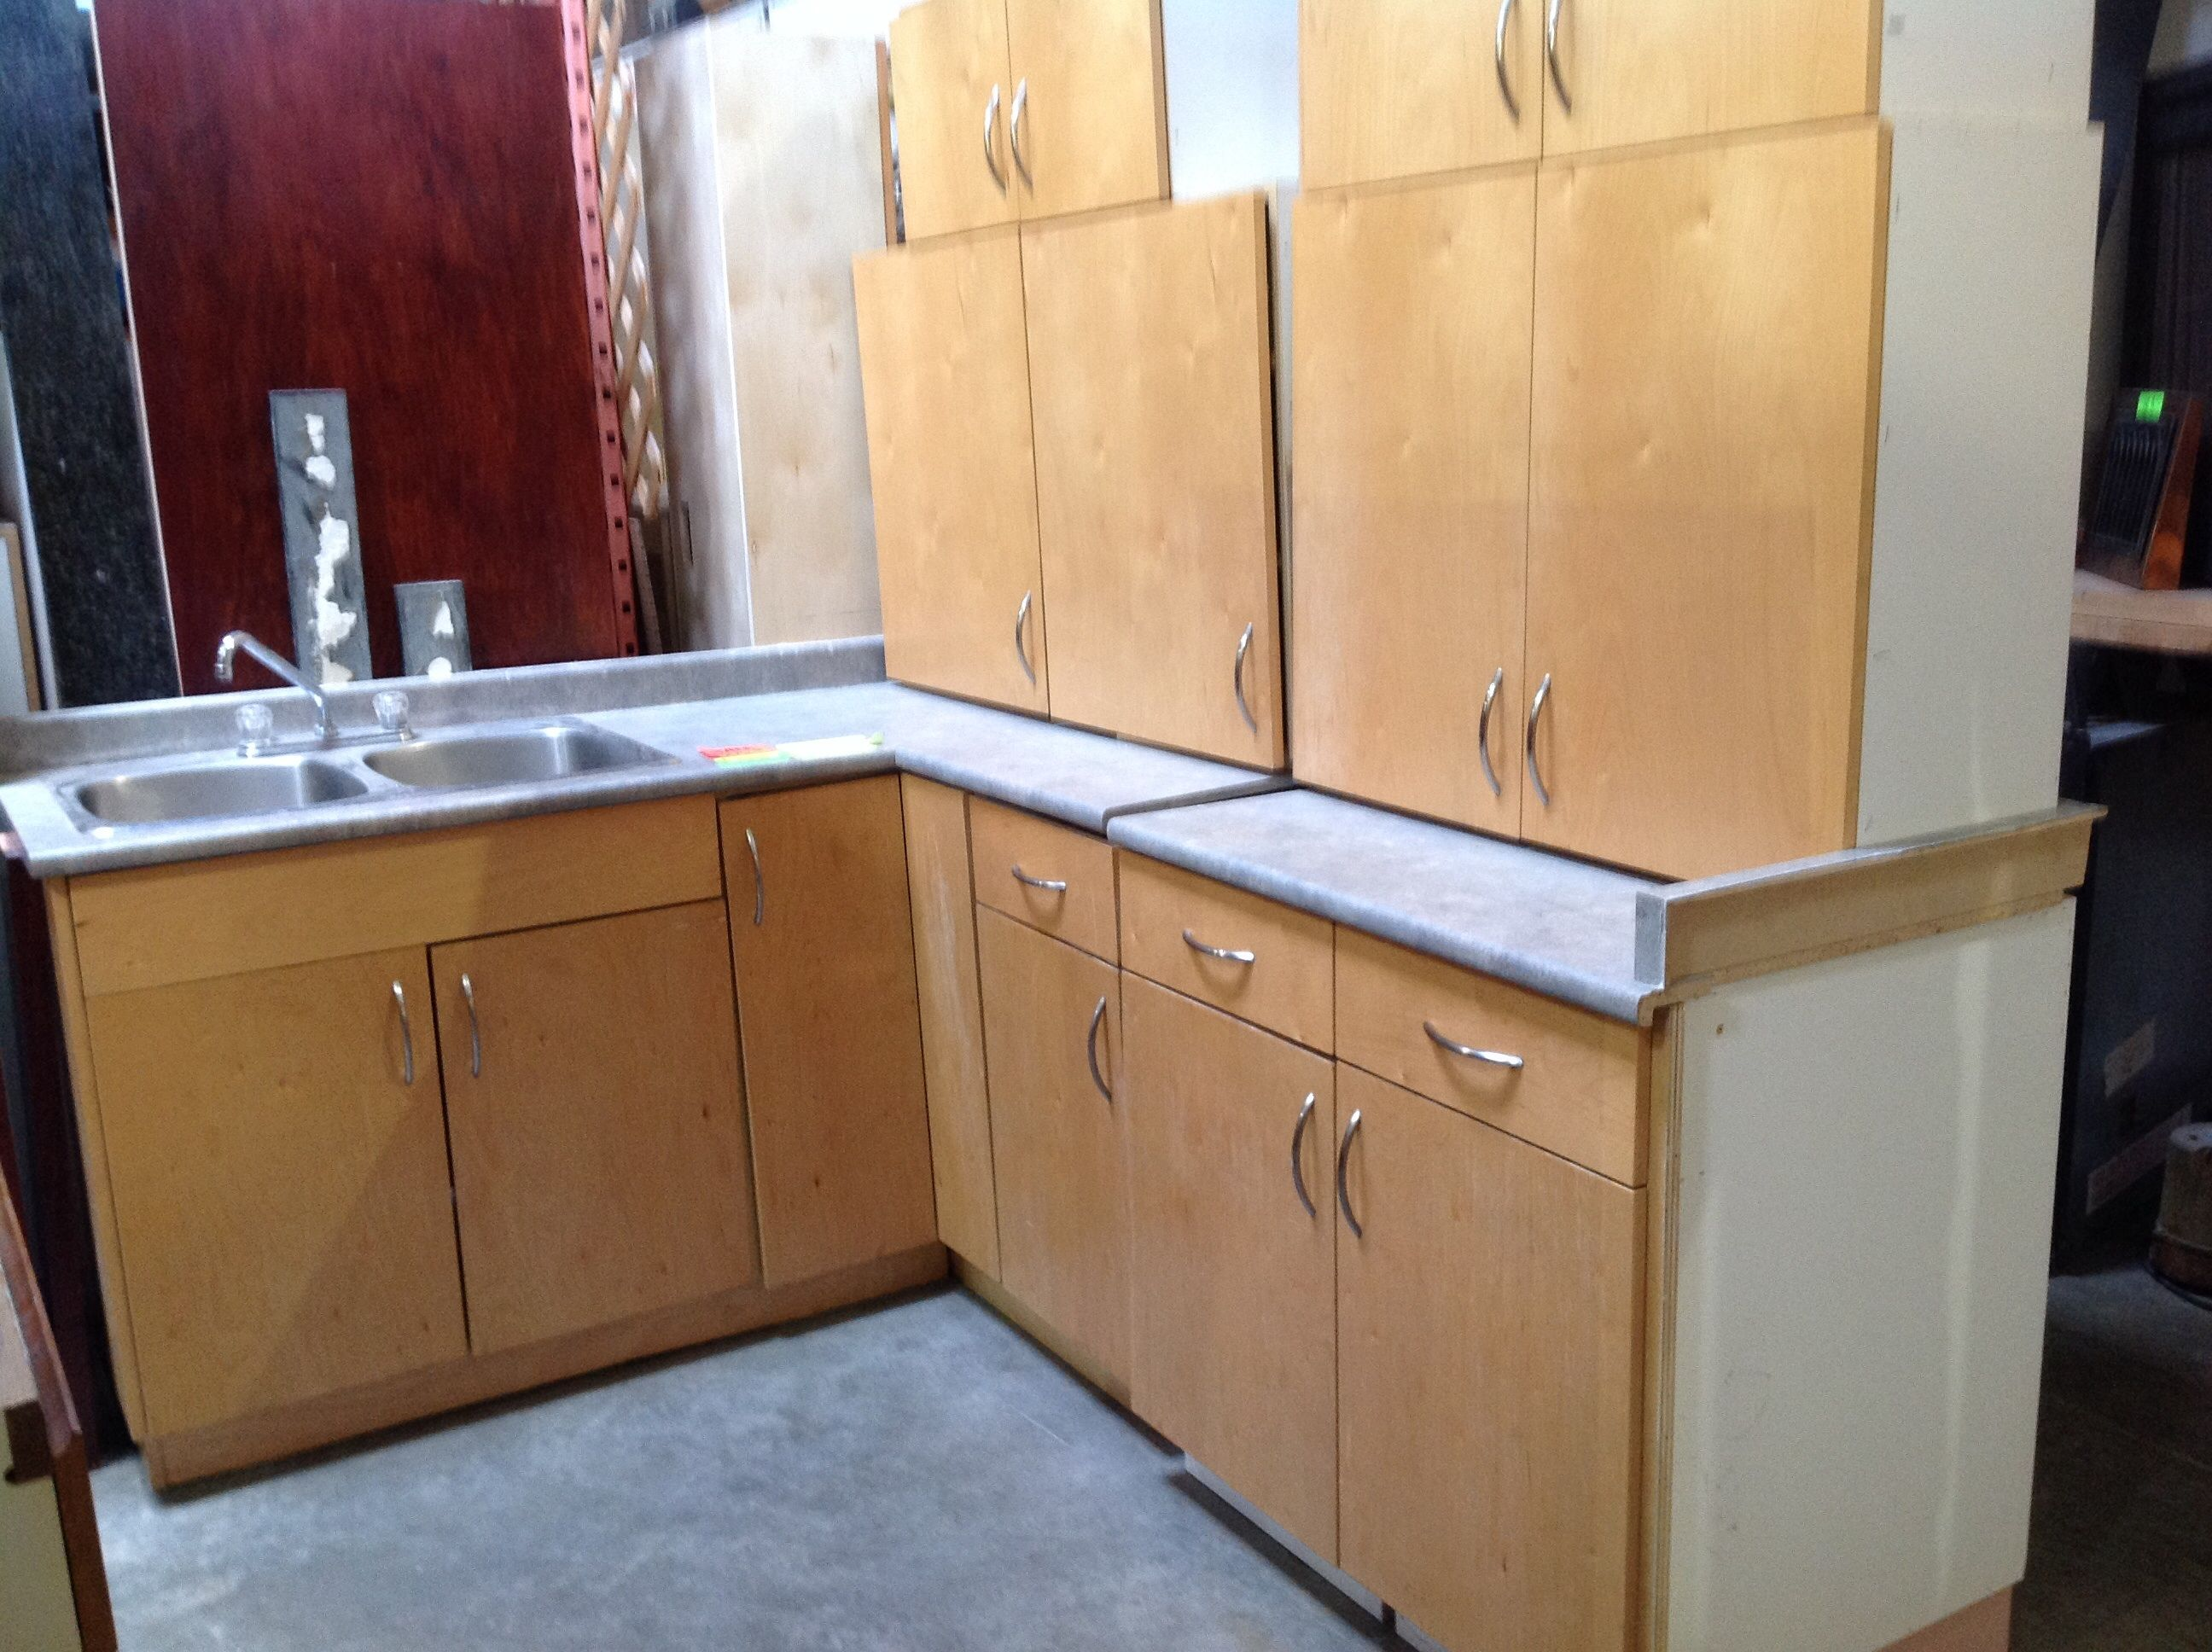 Used Kitchen Cabinets . Chilliwack New and Used Building Materials Inc. & Used Kitchen Cabinets ... Chilliwack New and Used Building Materials ...